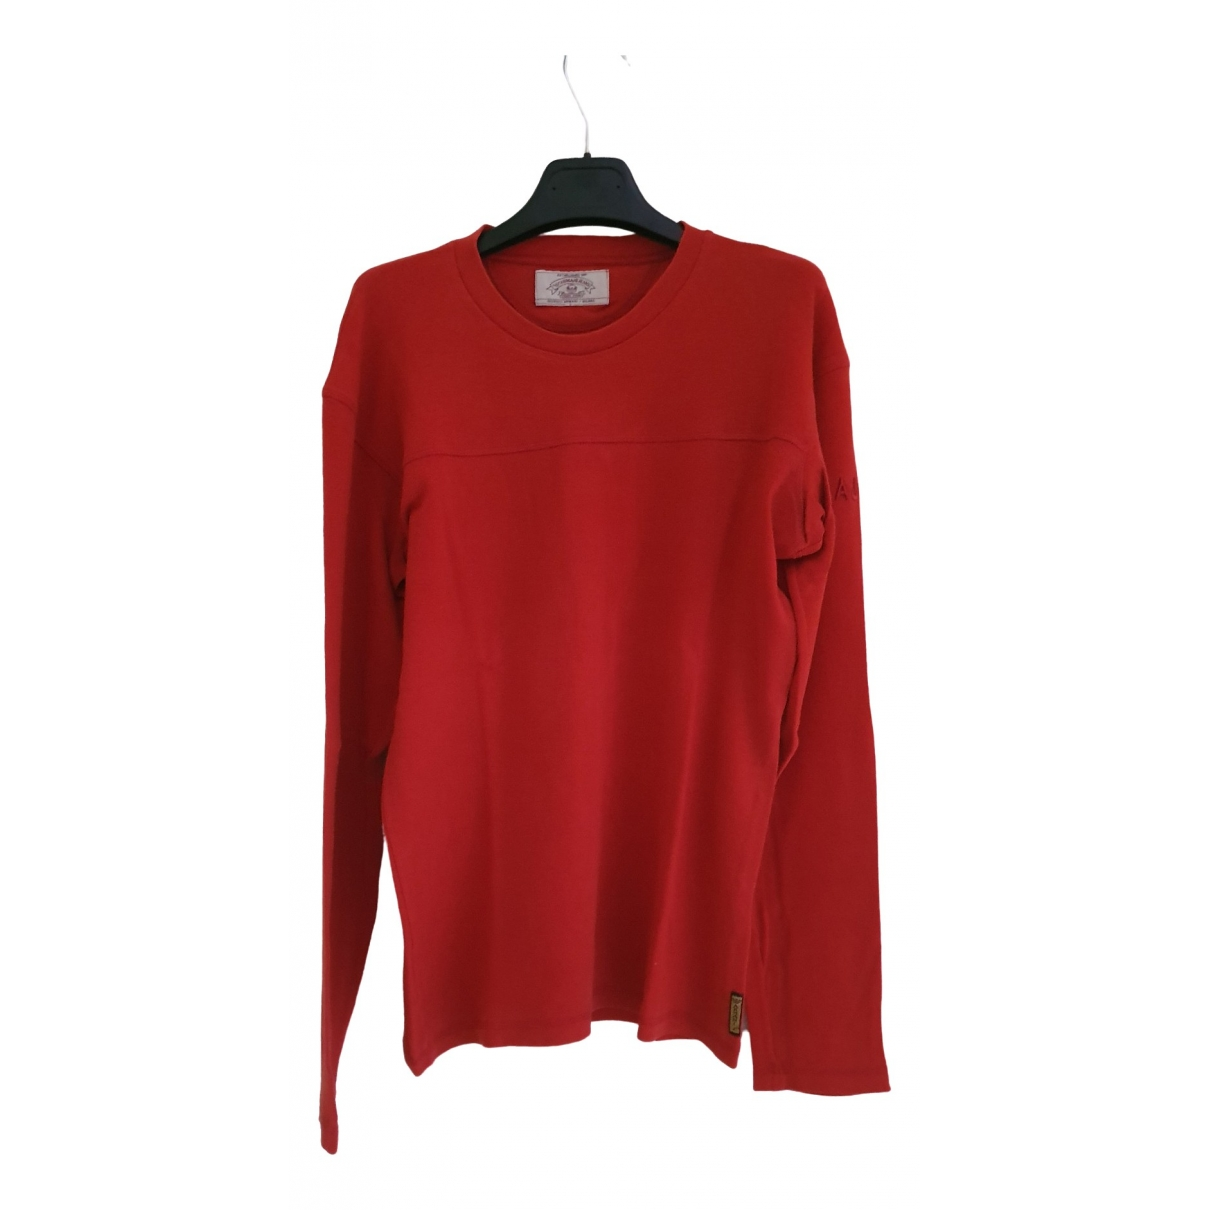 Armani Jeans \N Red Cotton Knitwear & Sweatshirts for Men M International